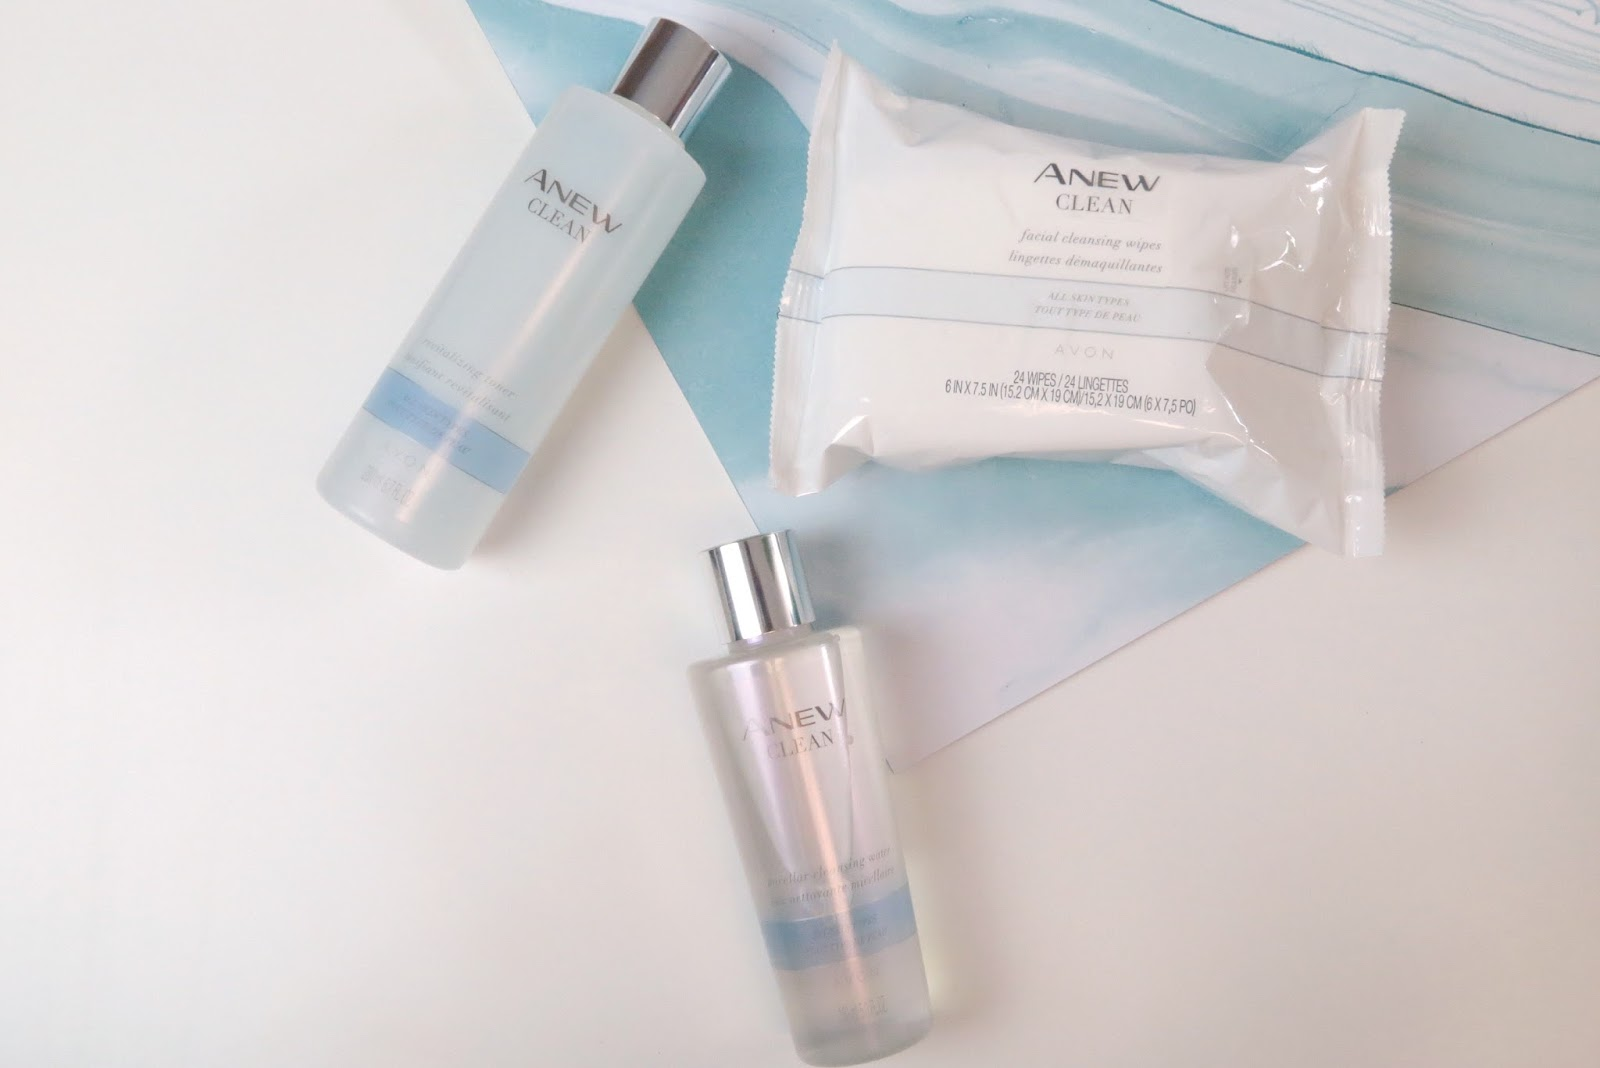 Review: Avon Anew Clean Skincare*